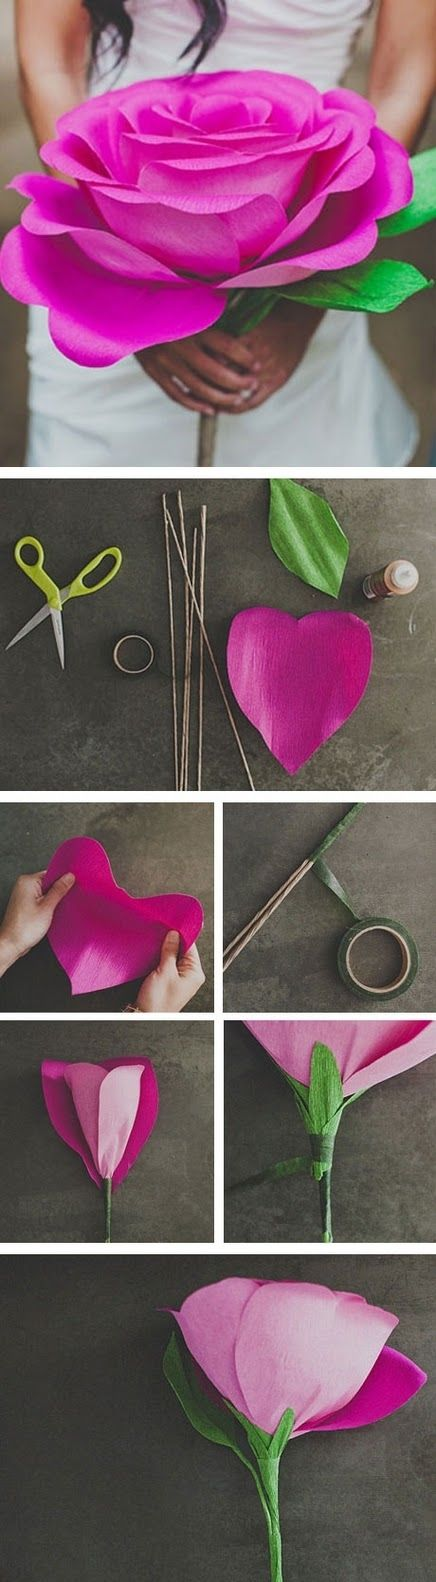 Show mom how much you love her with a giant crepe paper rose (or a bouquet of little ones)